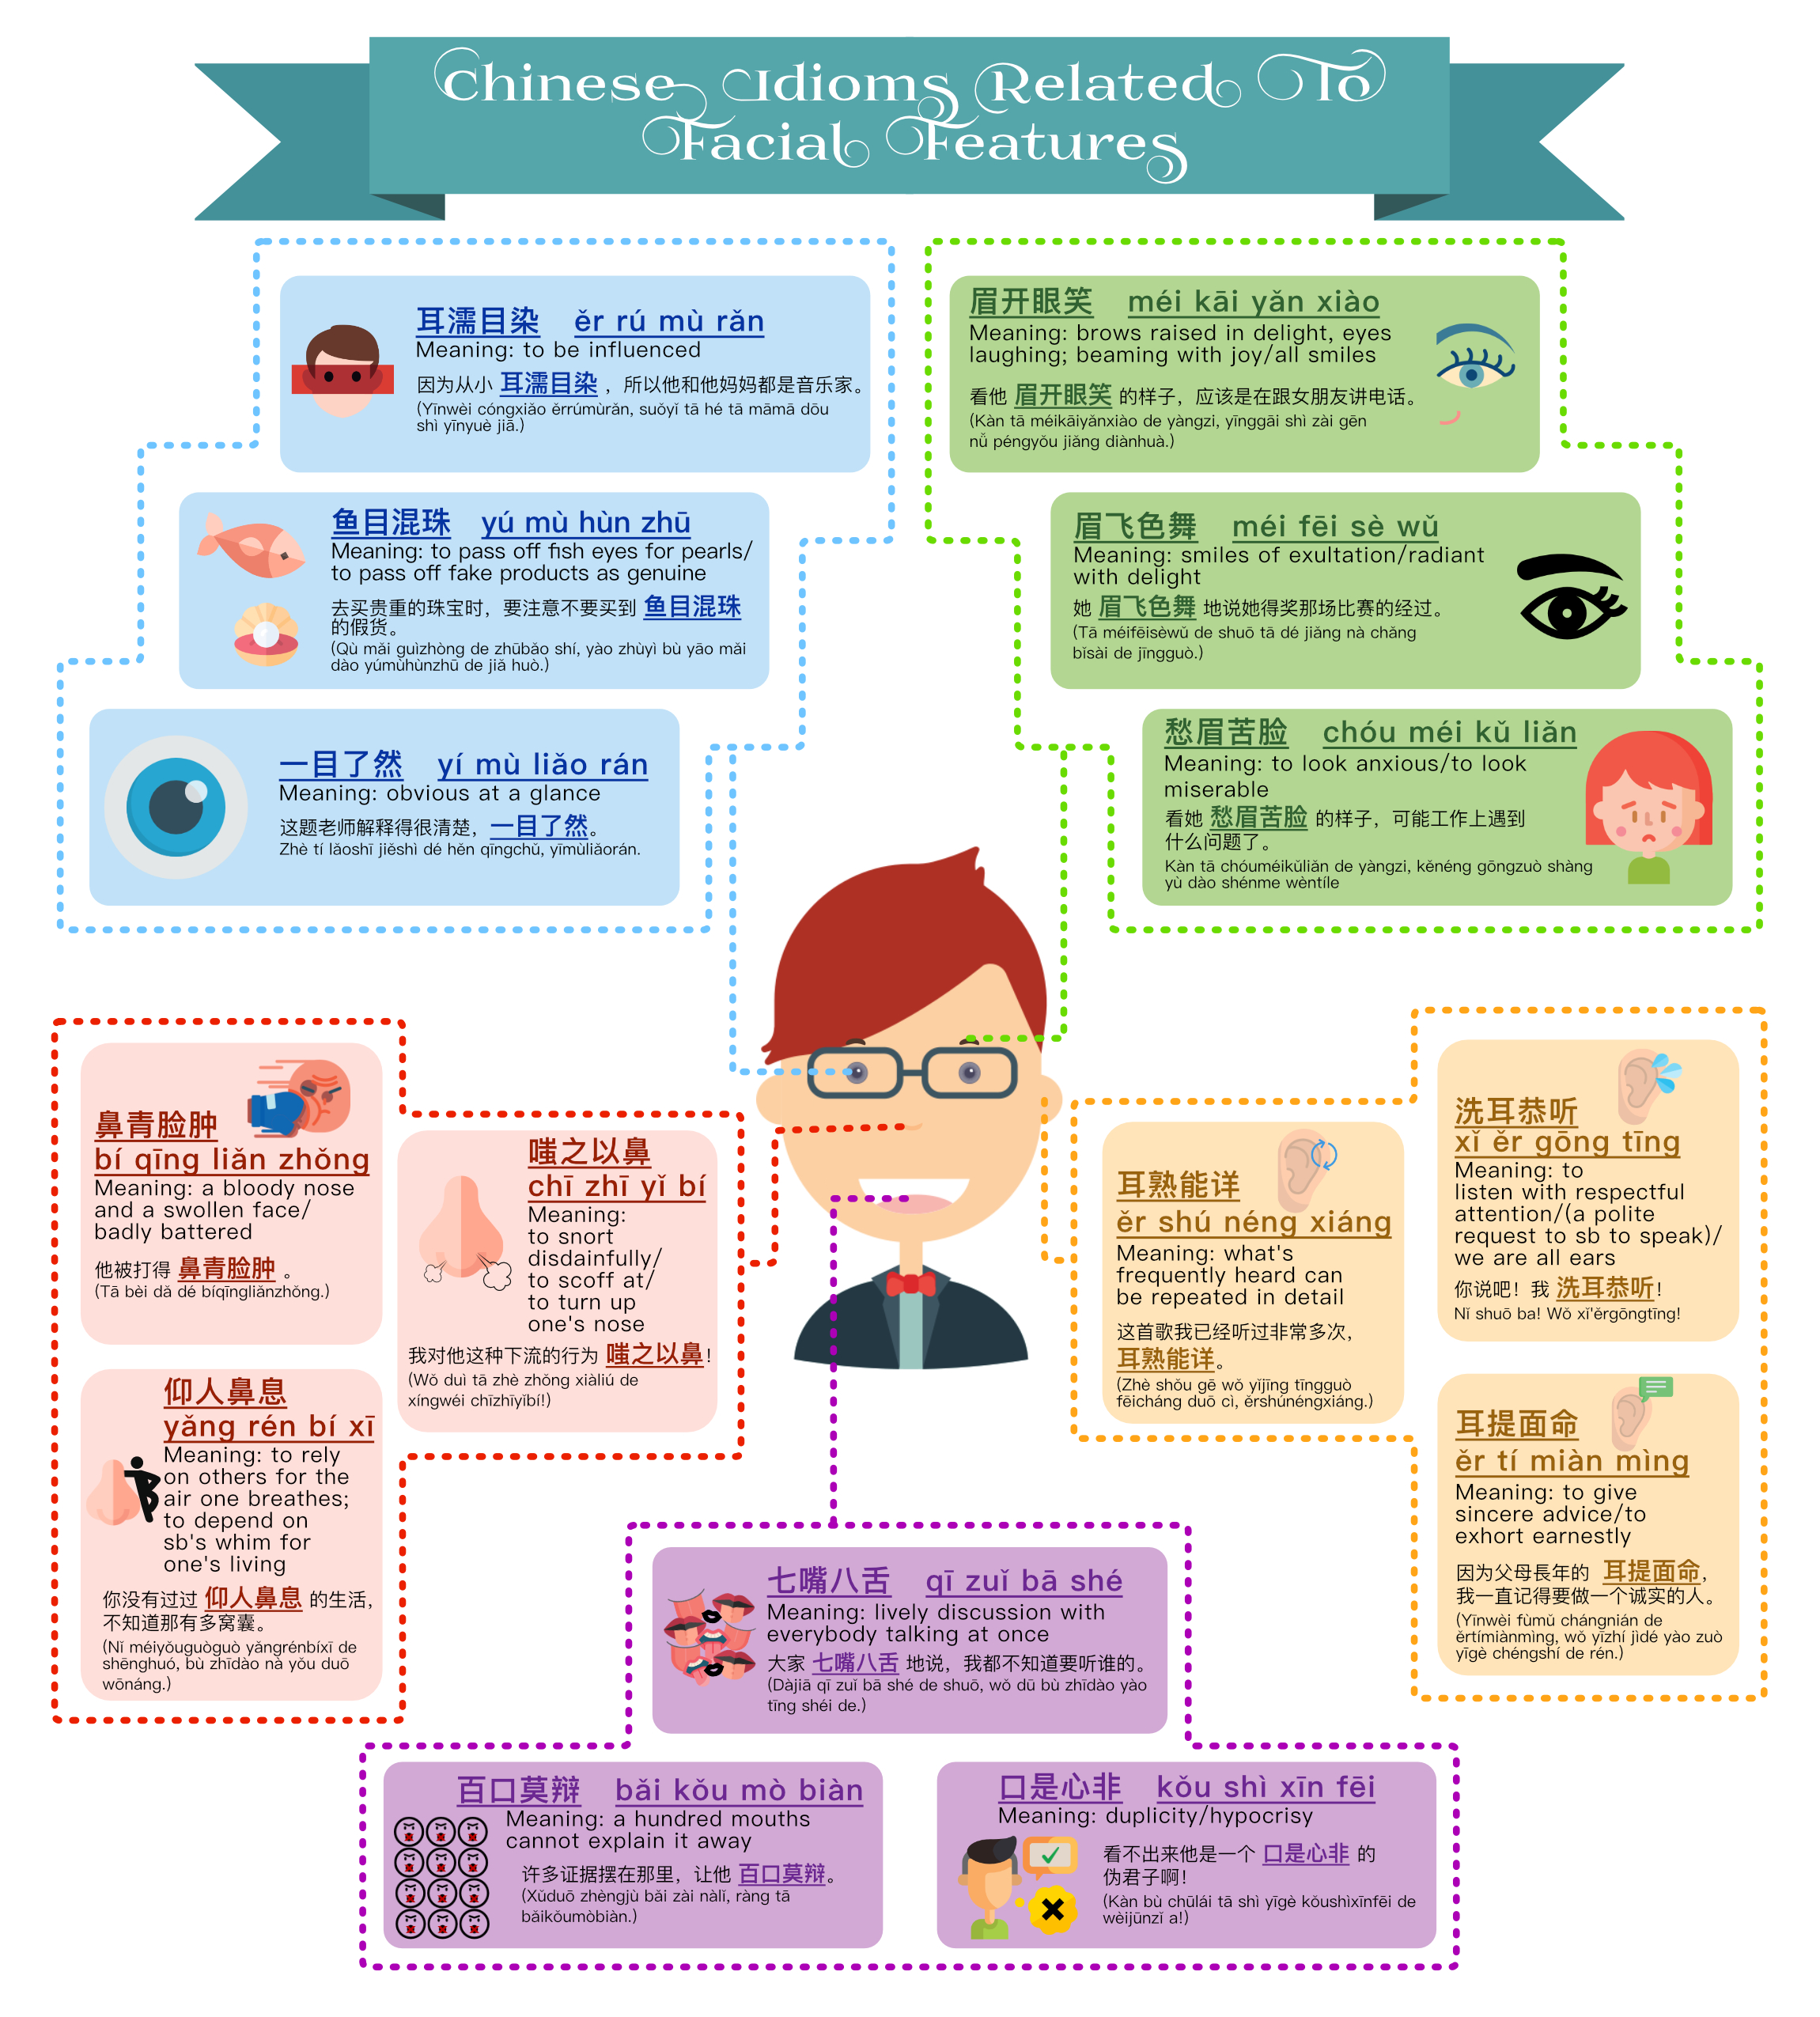 Facial Features Related Chinese Idioms SimplifiedChinese Version